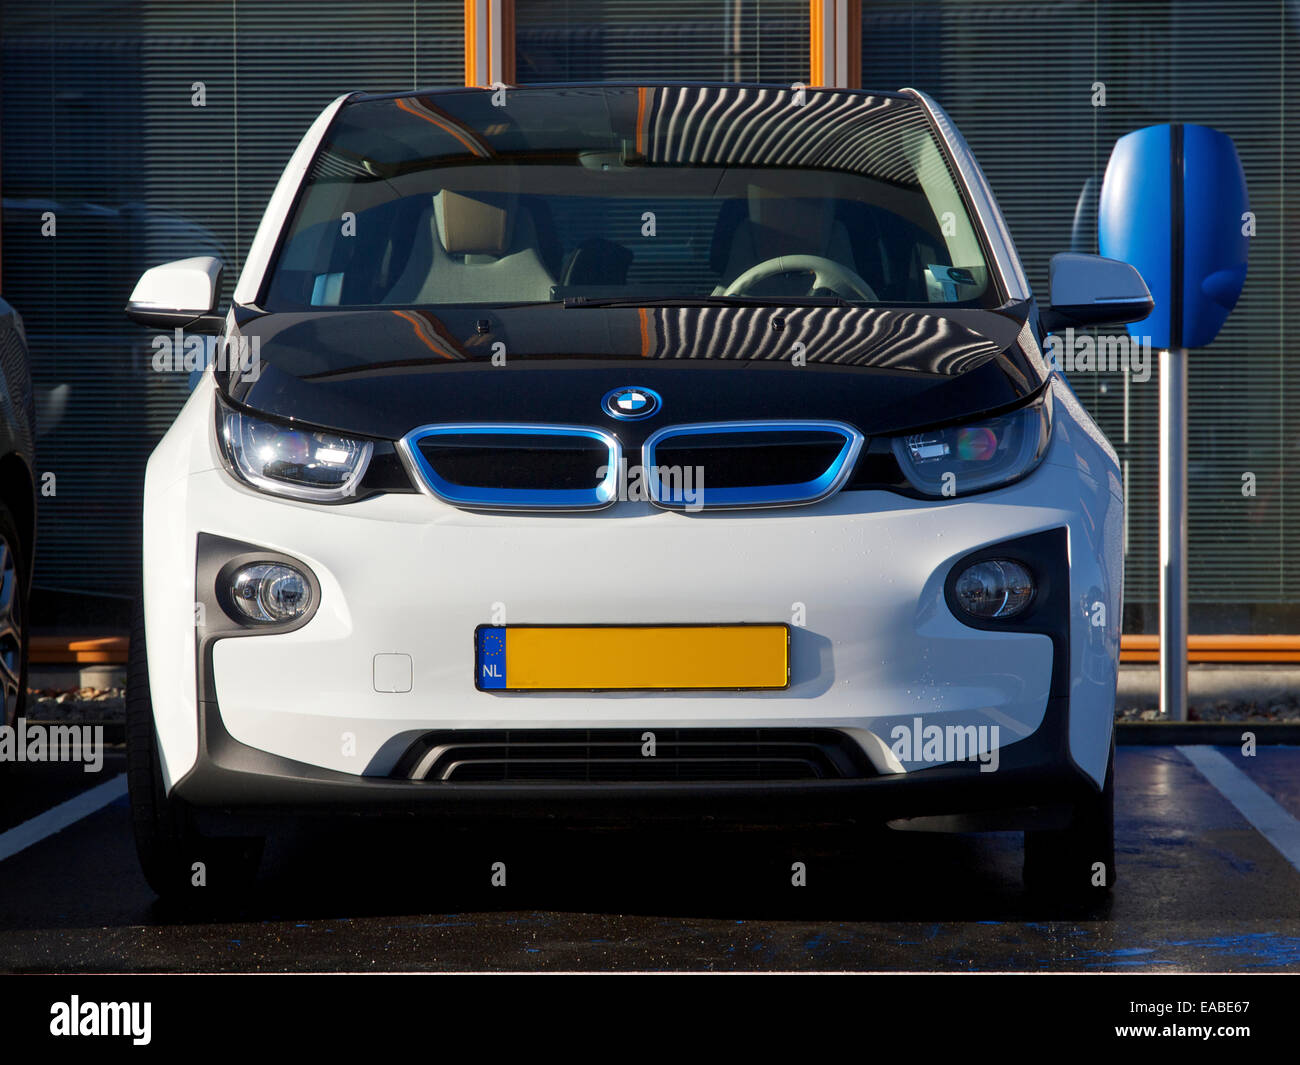 Bmw Electric Vehicle Battery Charging Stock Photos Bmw Electric